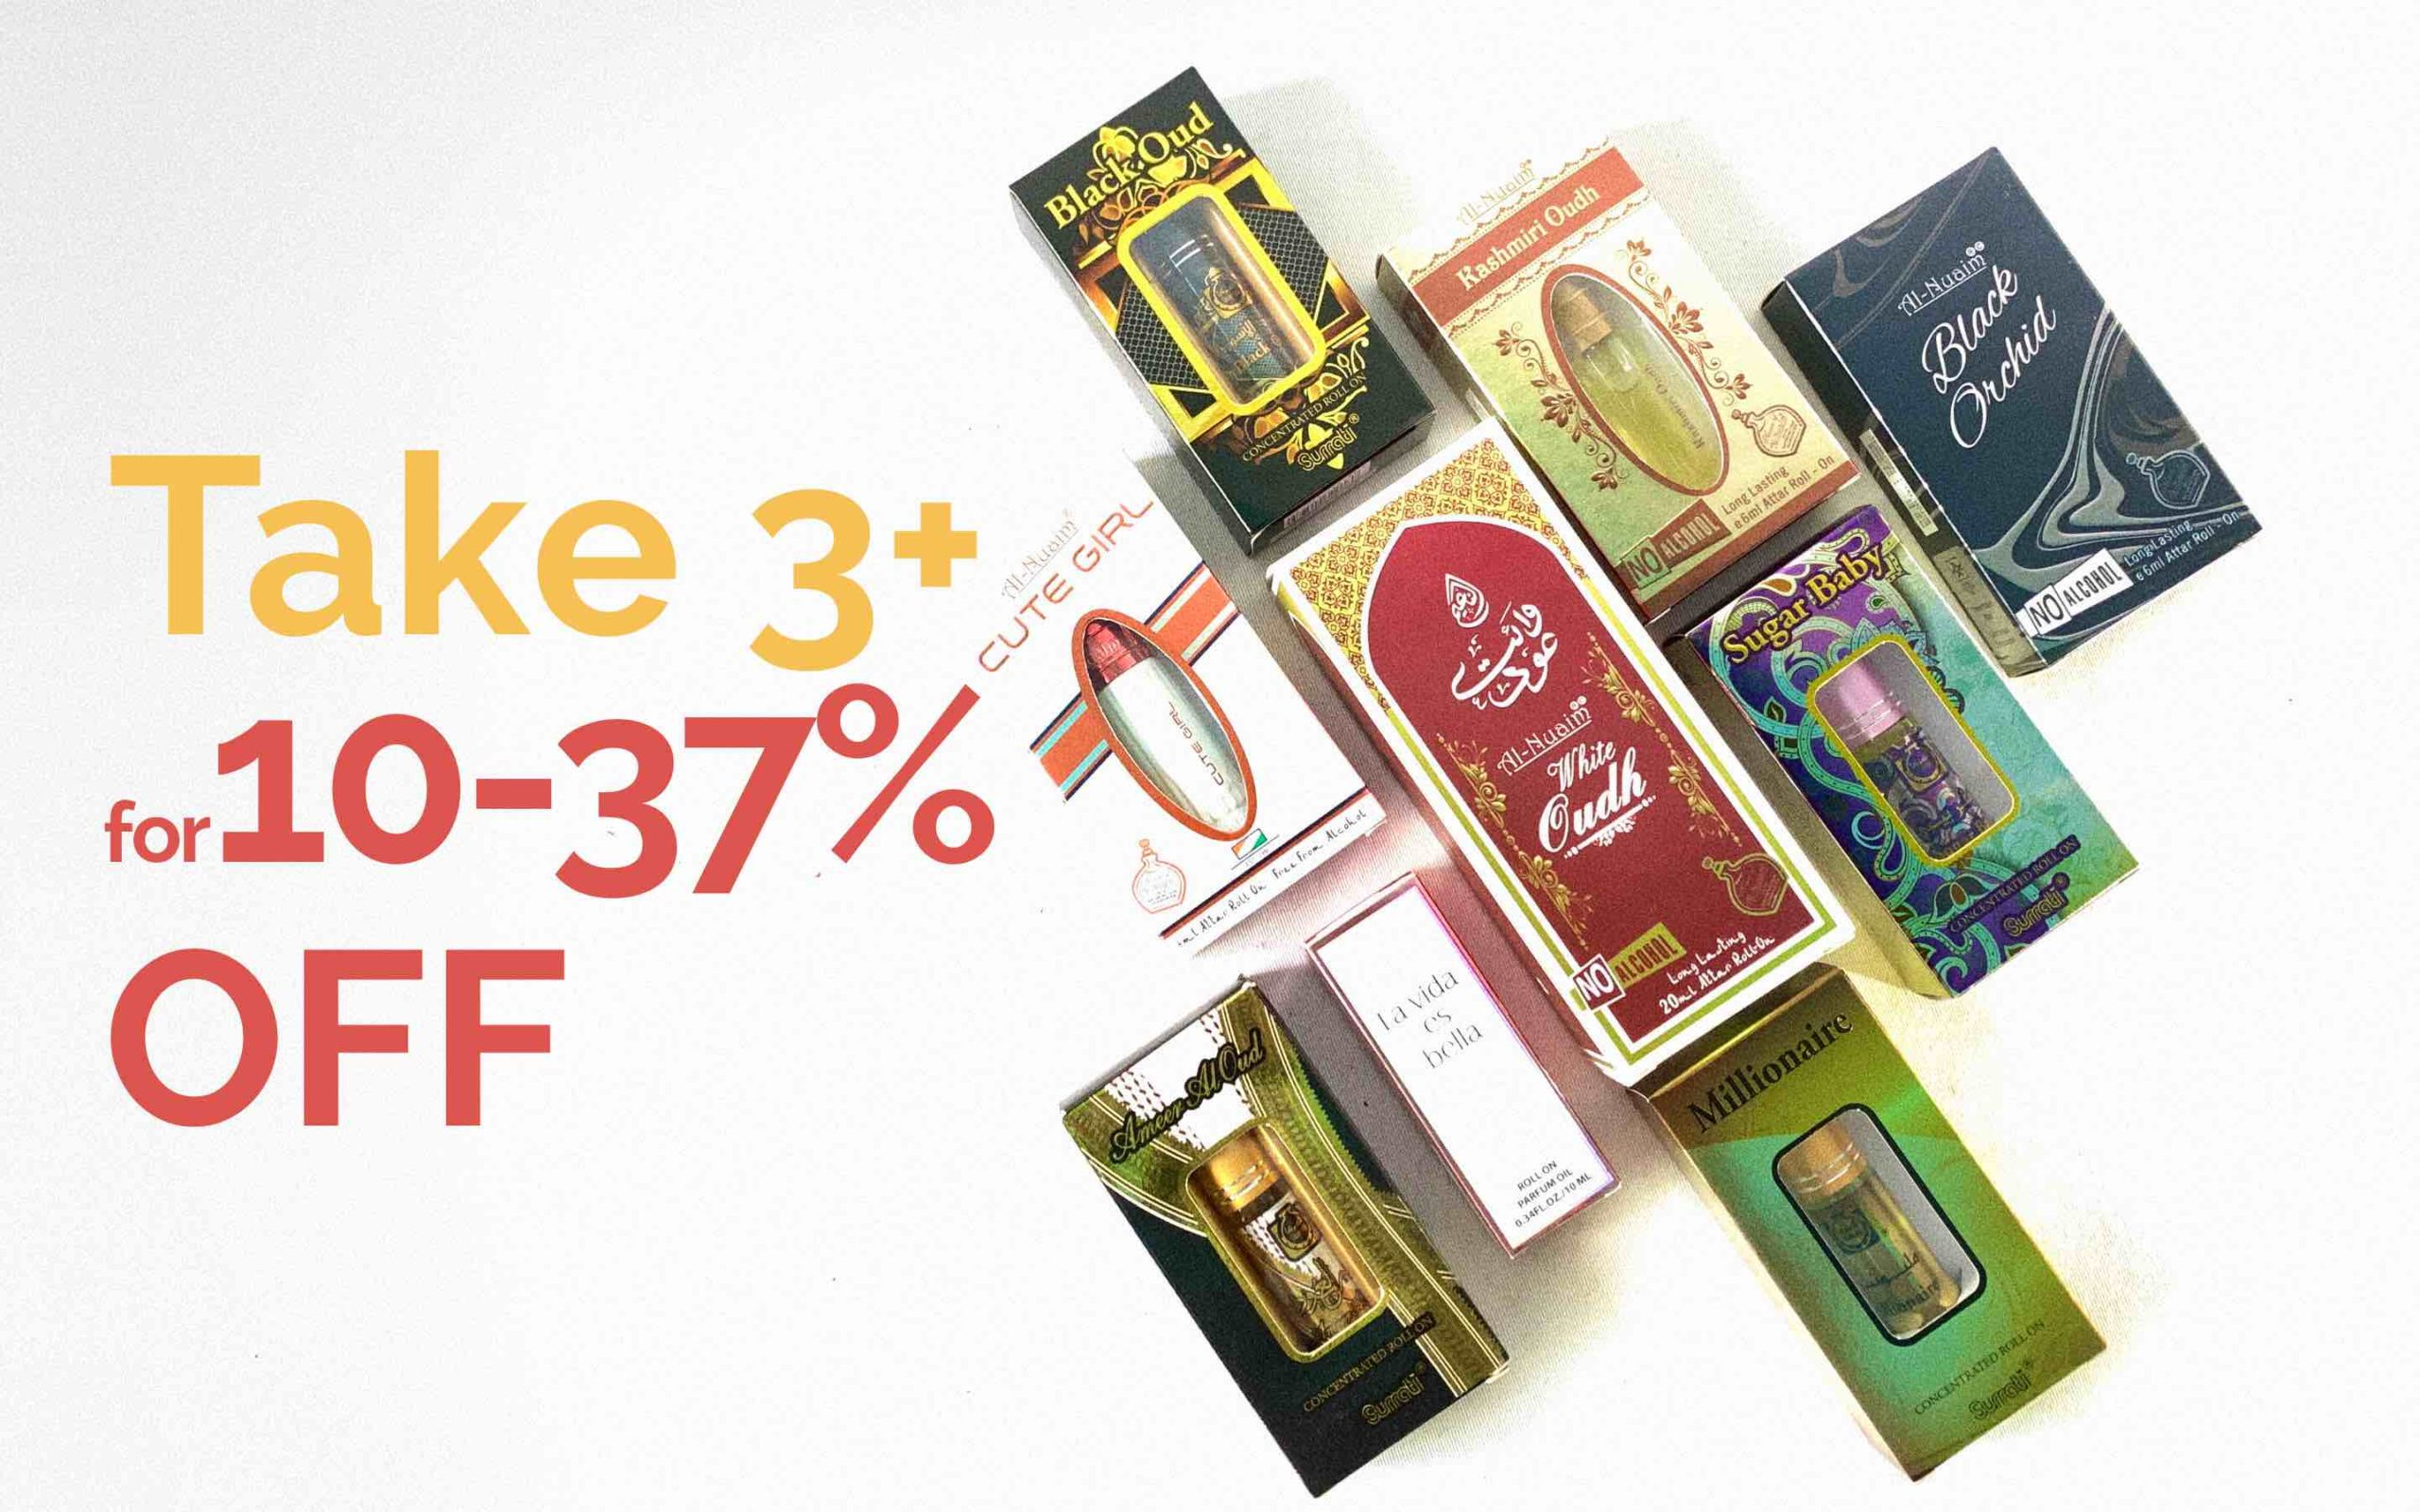 Take 3 for 10% off attar banner